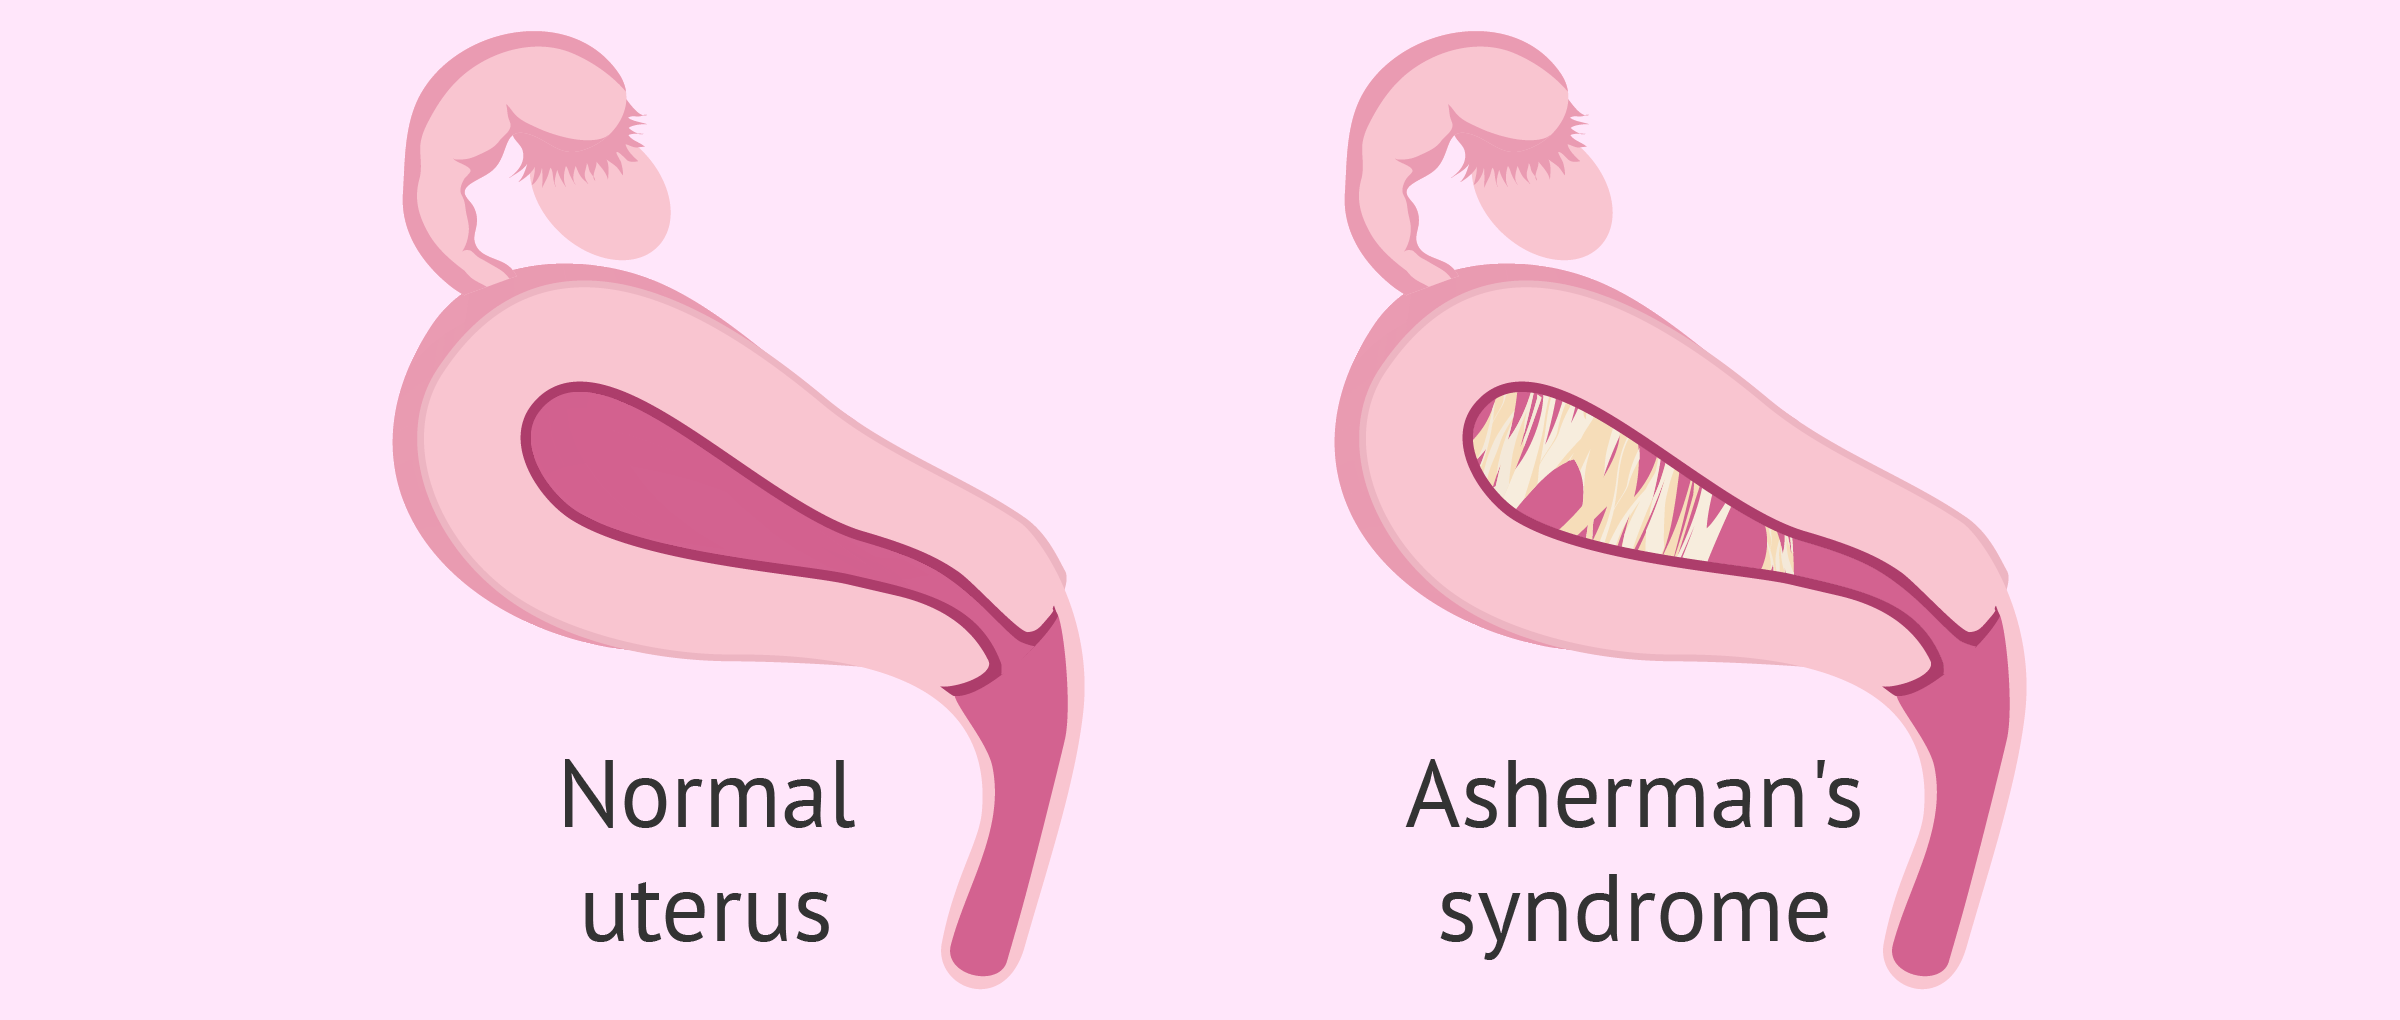 Asherman's Syndrome - Grading, Symptoms, Causes & Fertility